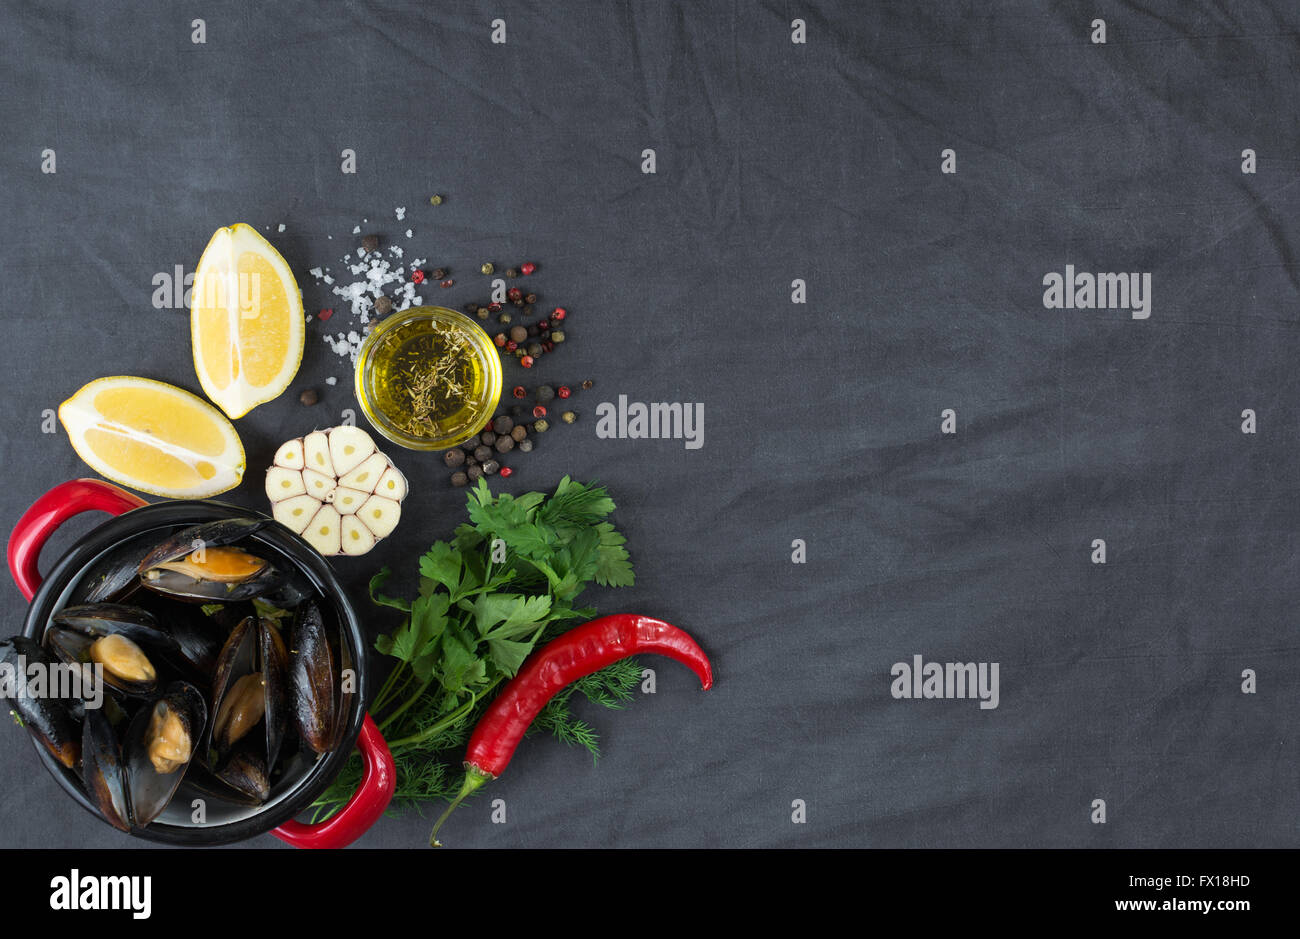 Casserole with mussels, lemons, chili pepper and spices - Stock Image